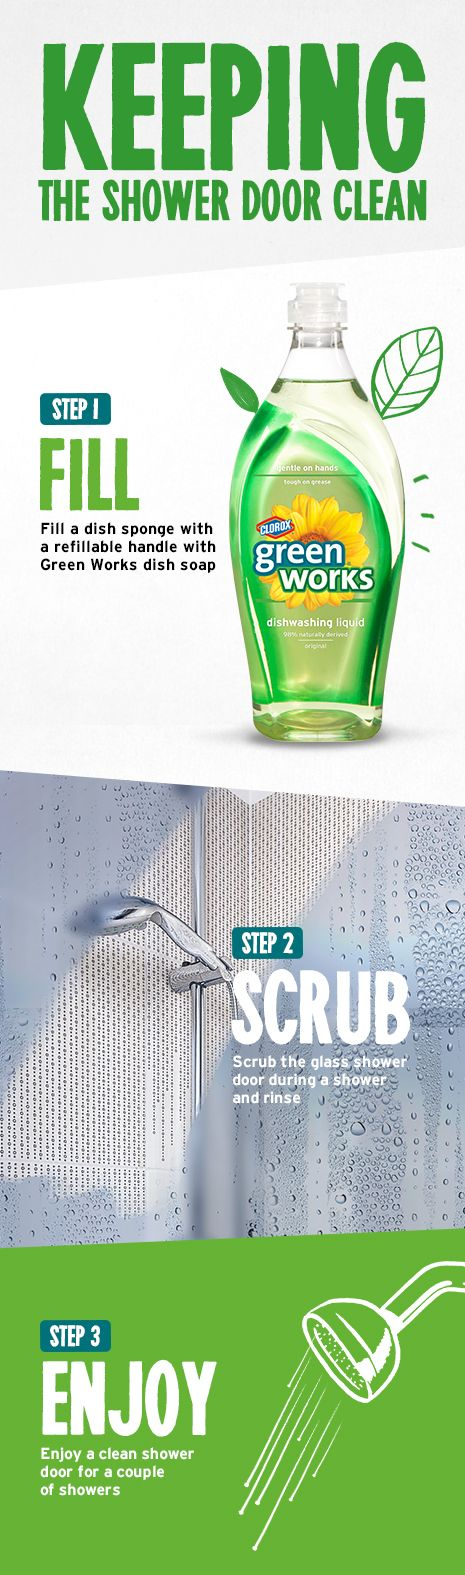 Keeping the shower door clean with Green Works liquid soap  #GreenWorksGames #sponsored